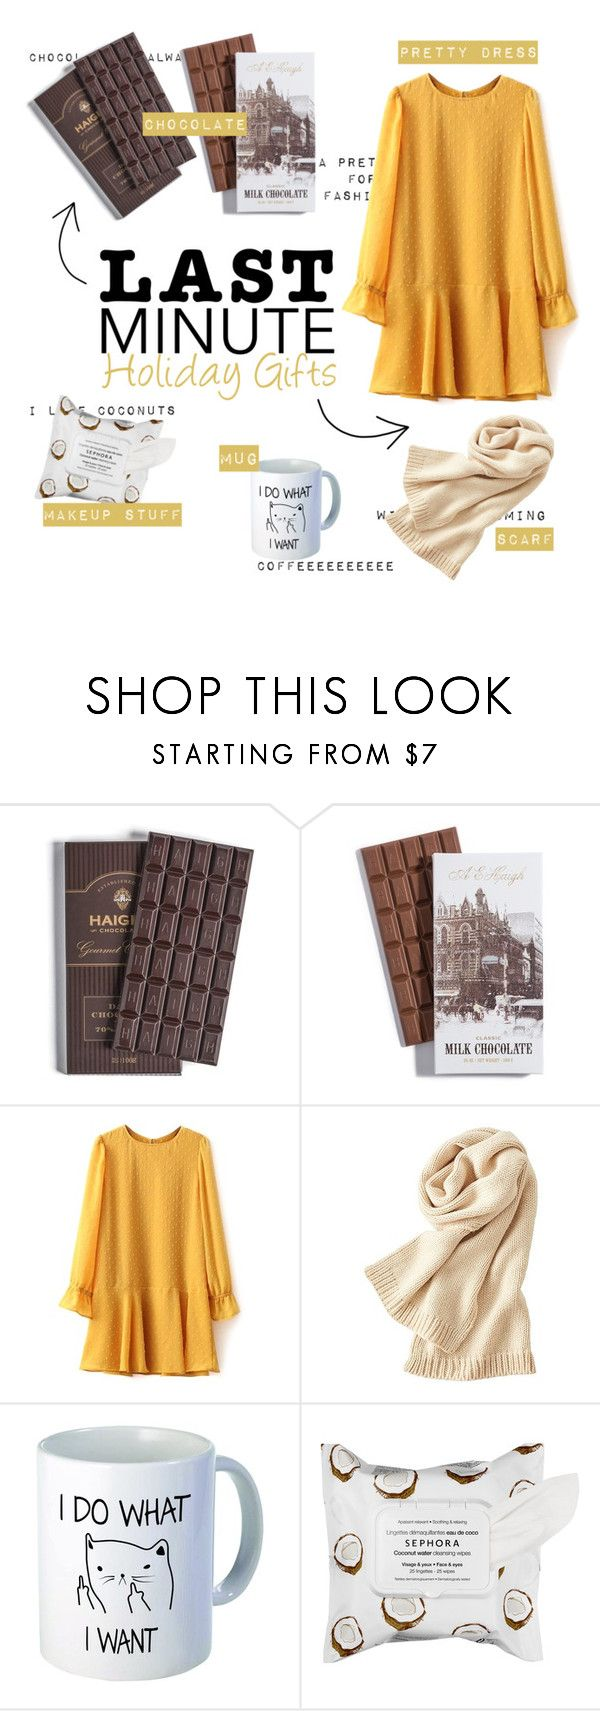 """""""Last minute holiday gifts"""" by aninhad-von ❤ liked on Polyvore featuring Uniqlo and Sephora Collection"""